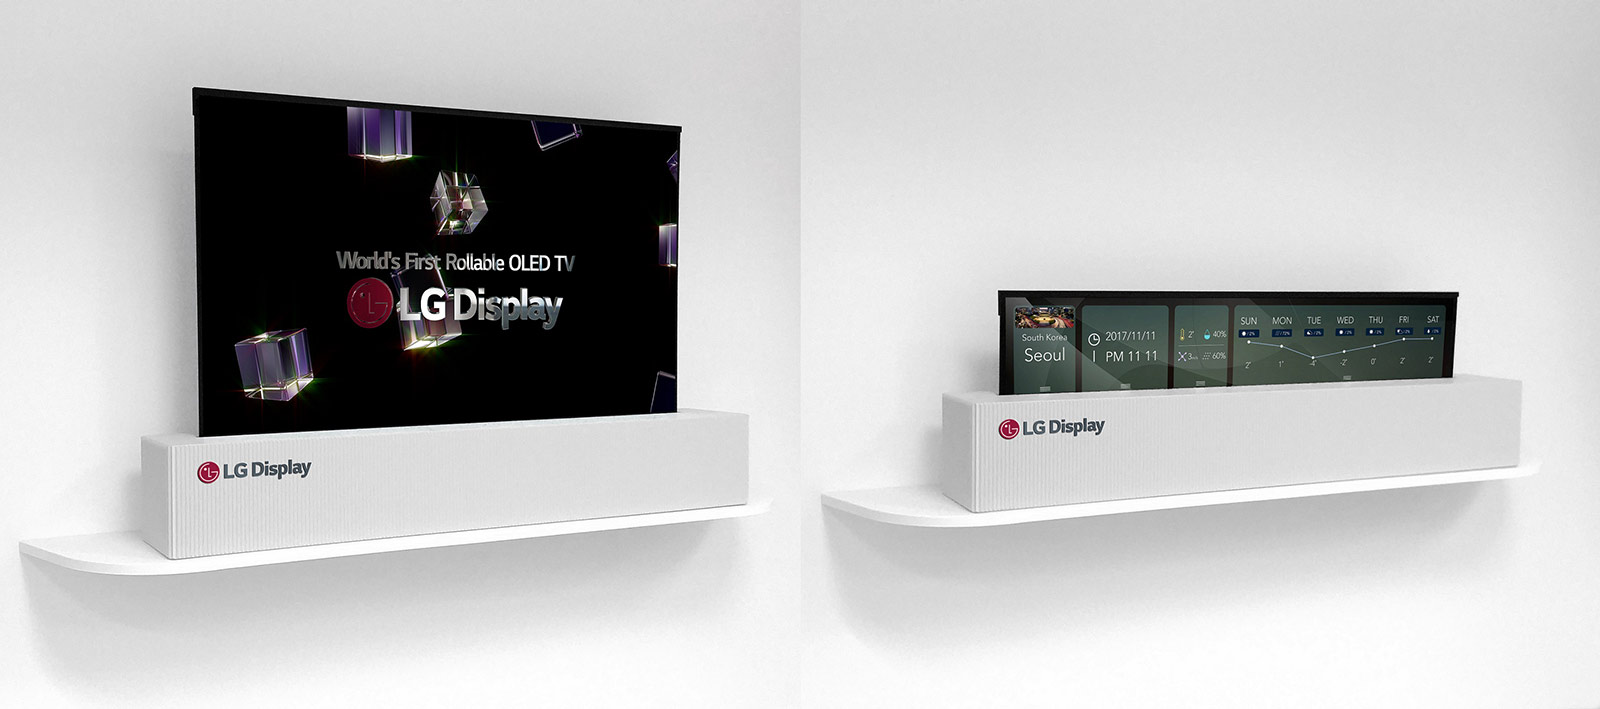 LG rollable OLED display.